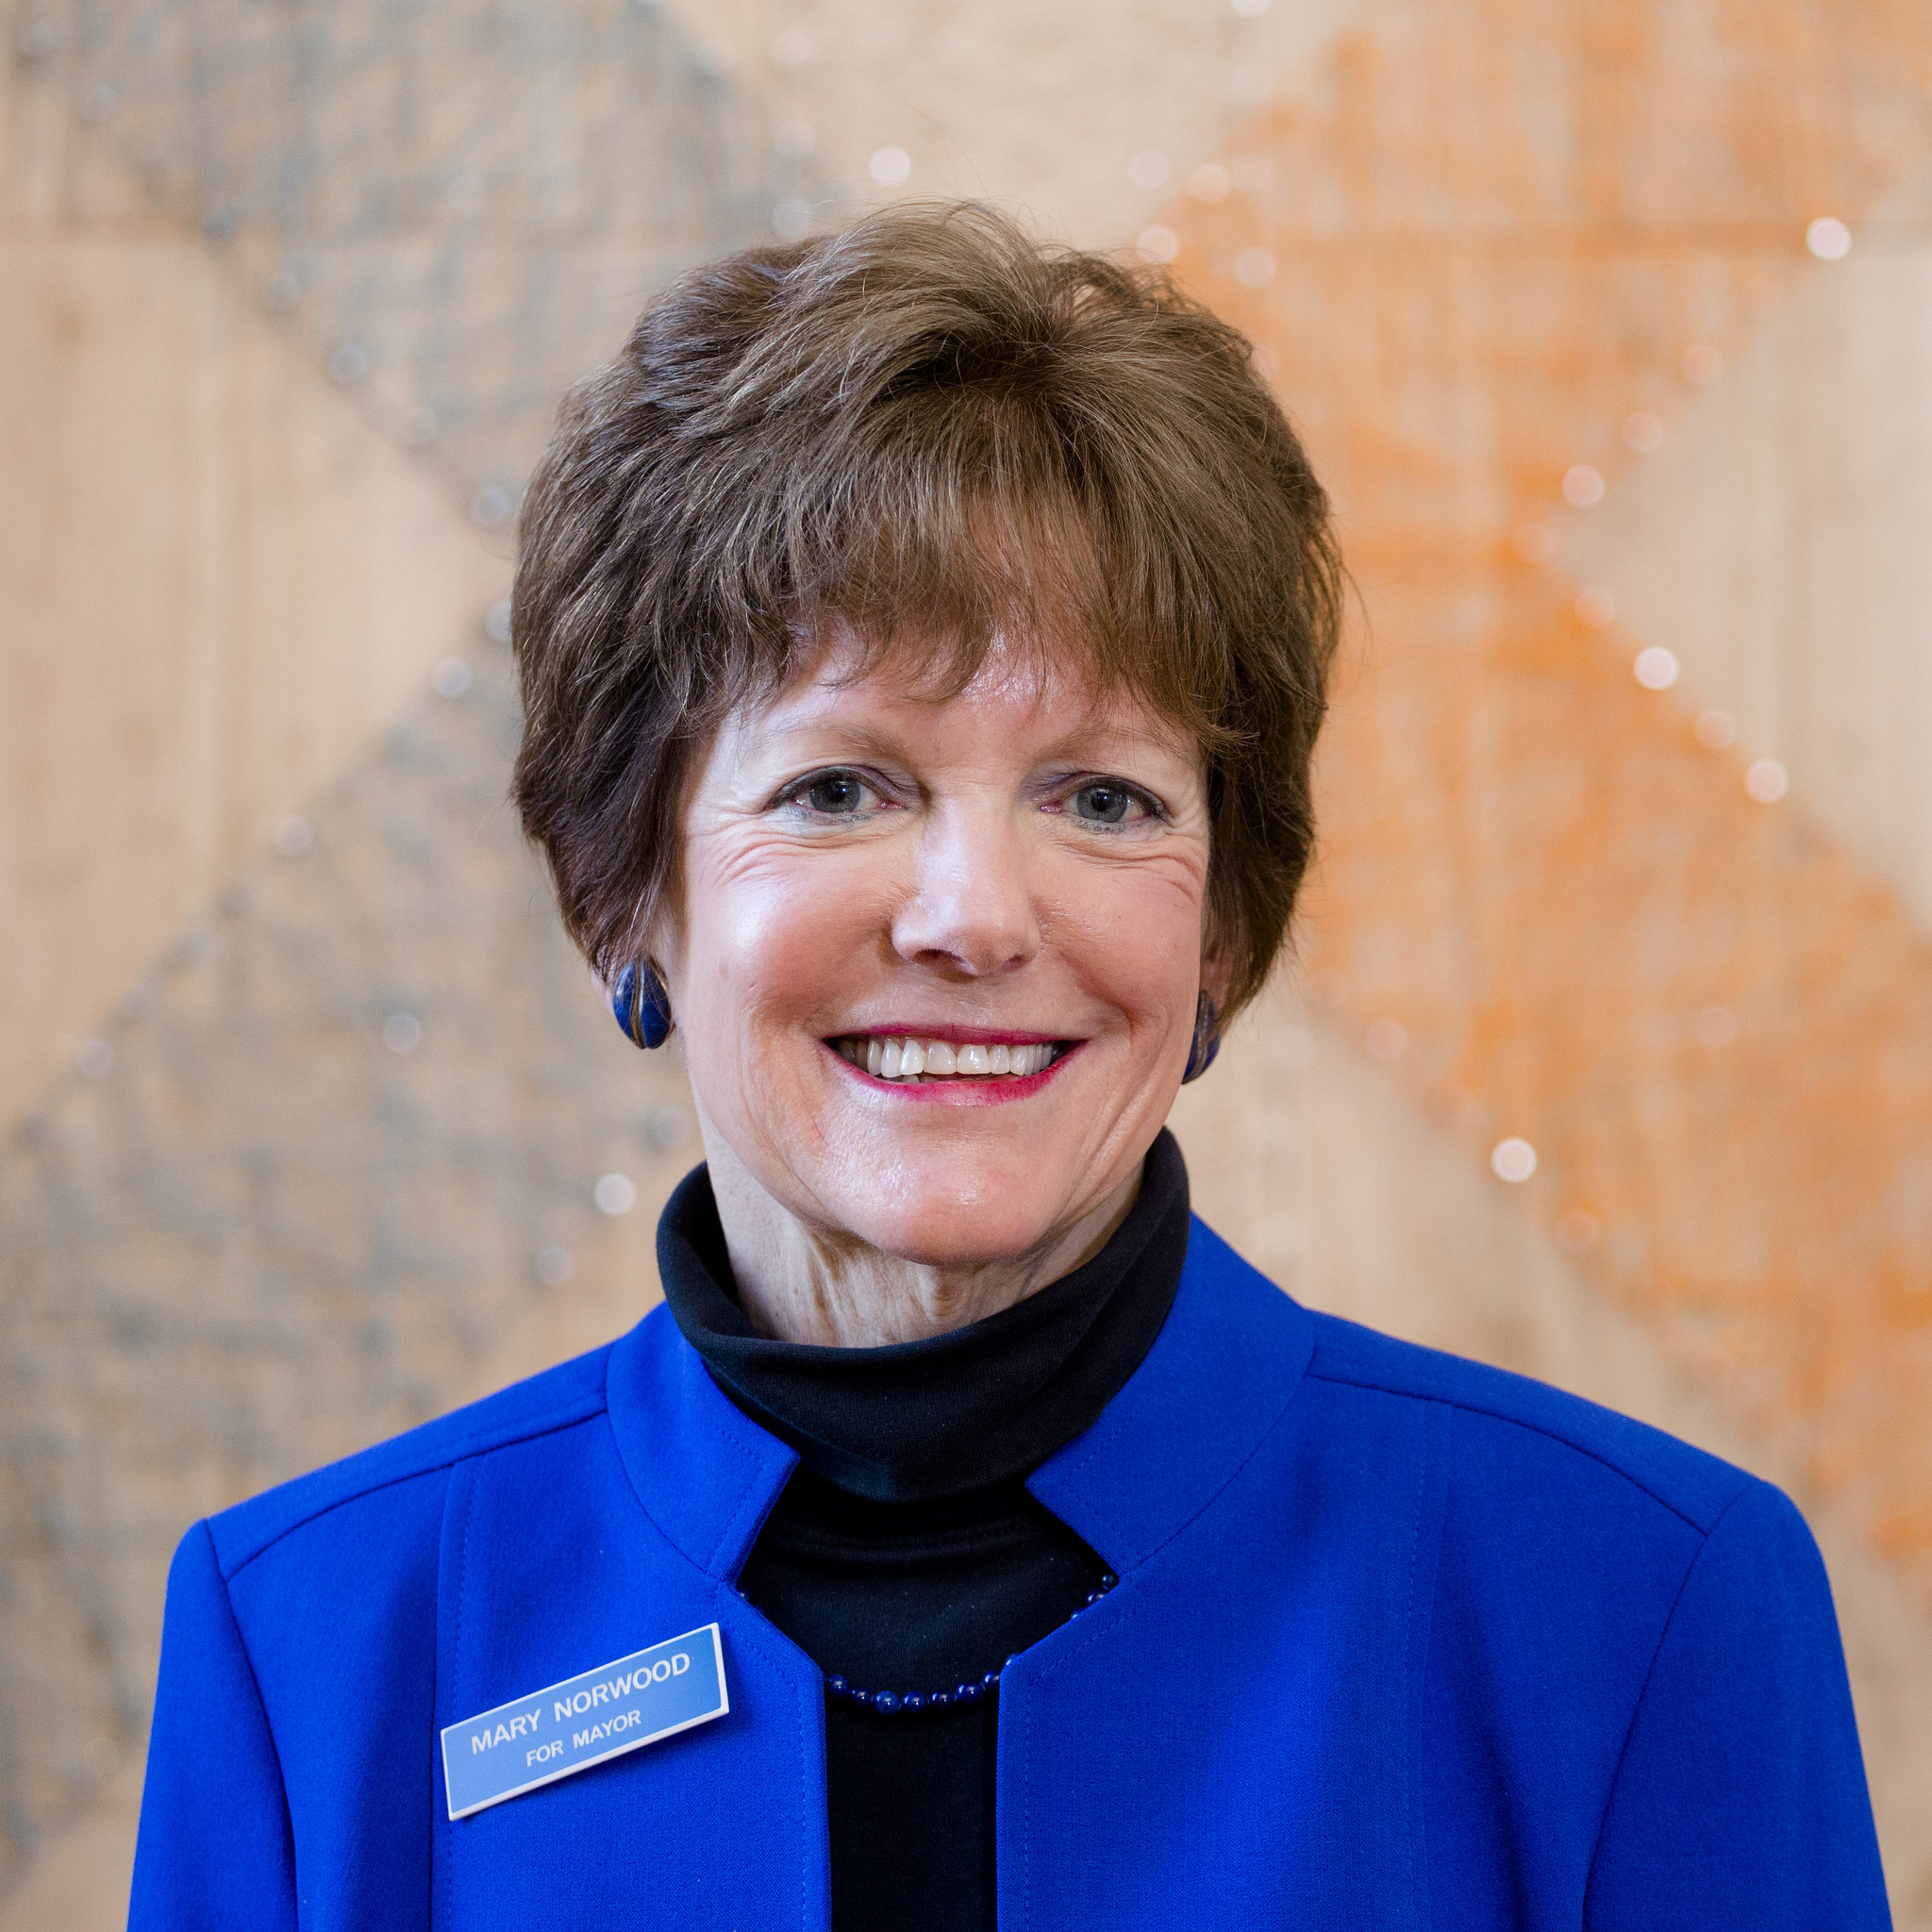 - On March 7, Mary Norwood joined us for a 2017 #VoteLocal breakfast at the Center for Civic Innovation. As a current City Council member, Mary Norwood wants to put transparency and safety at the forefront of city hall.CURRENT POSITION:Atlanta City Council Member